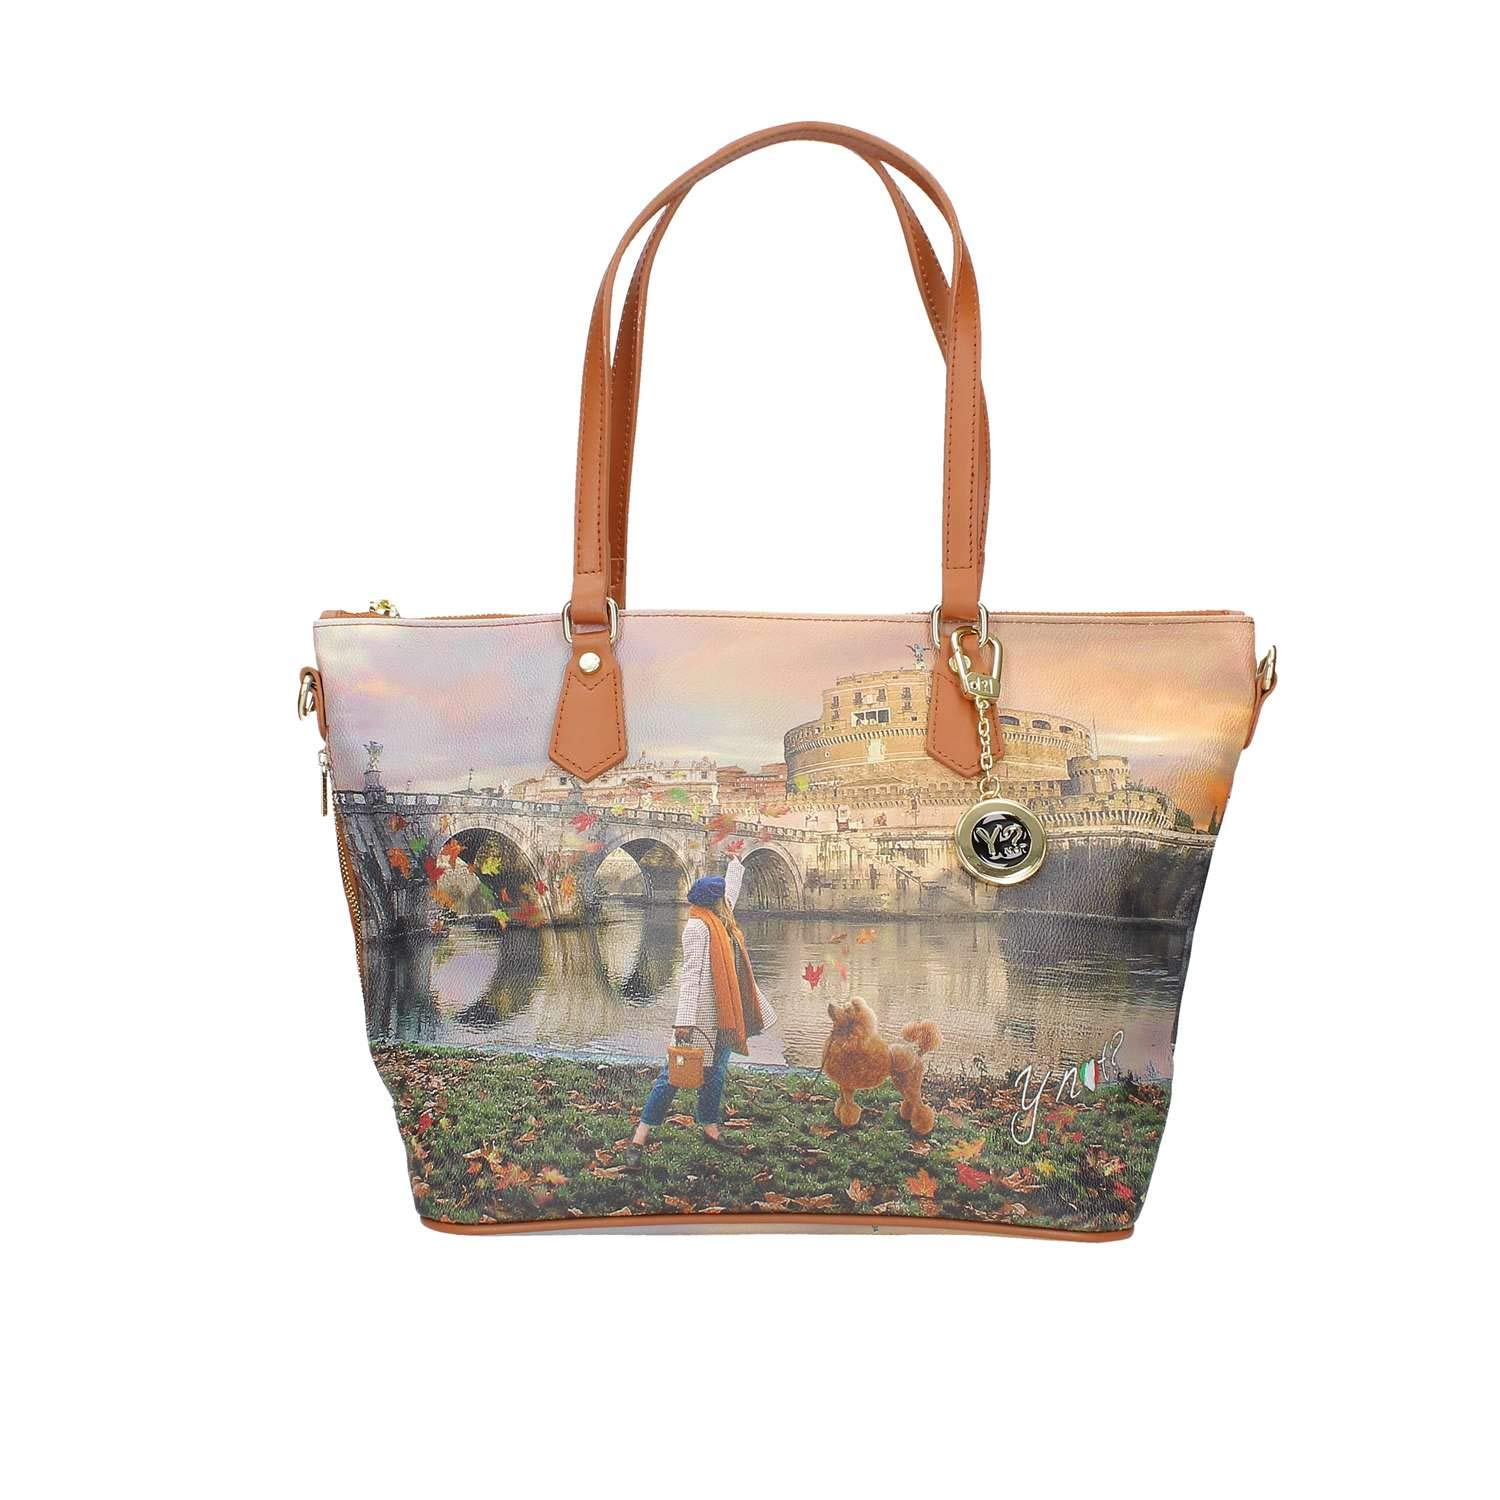 YNOT K-396 SHOPPER Donna STAMPA ROMA TU Y Not?